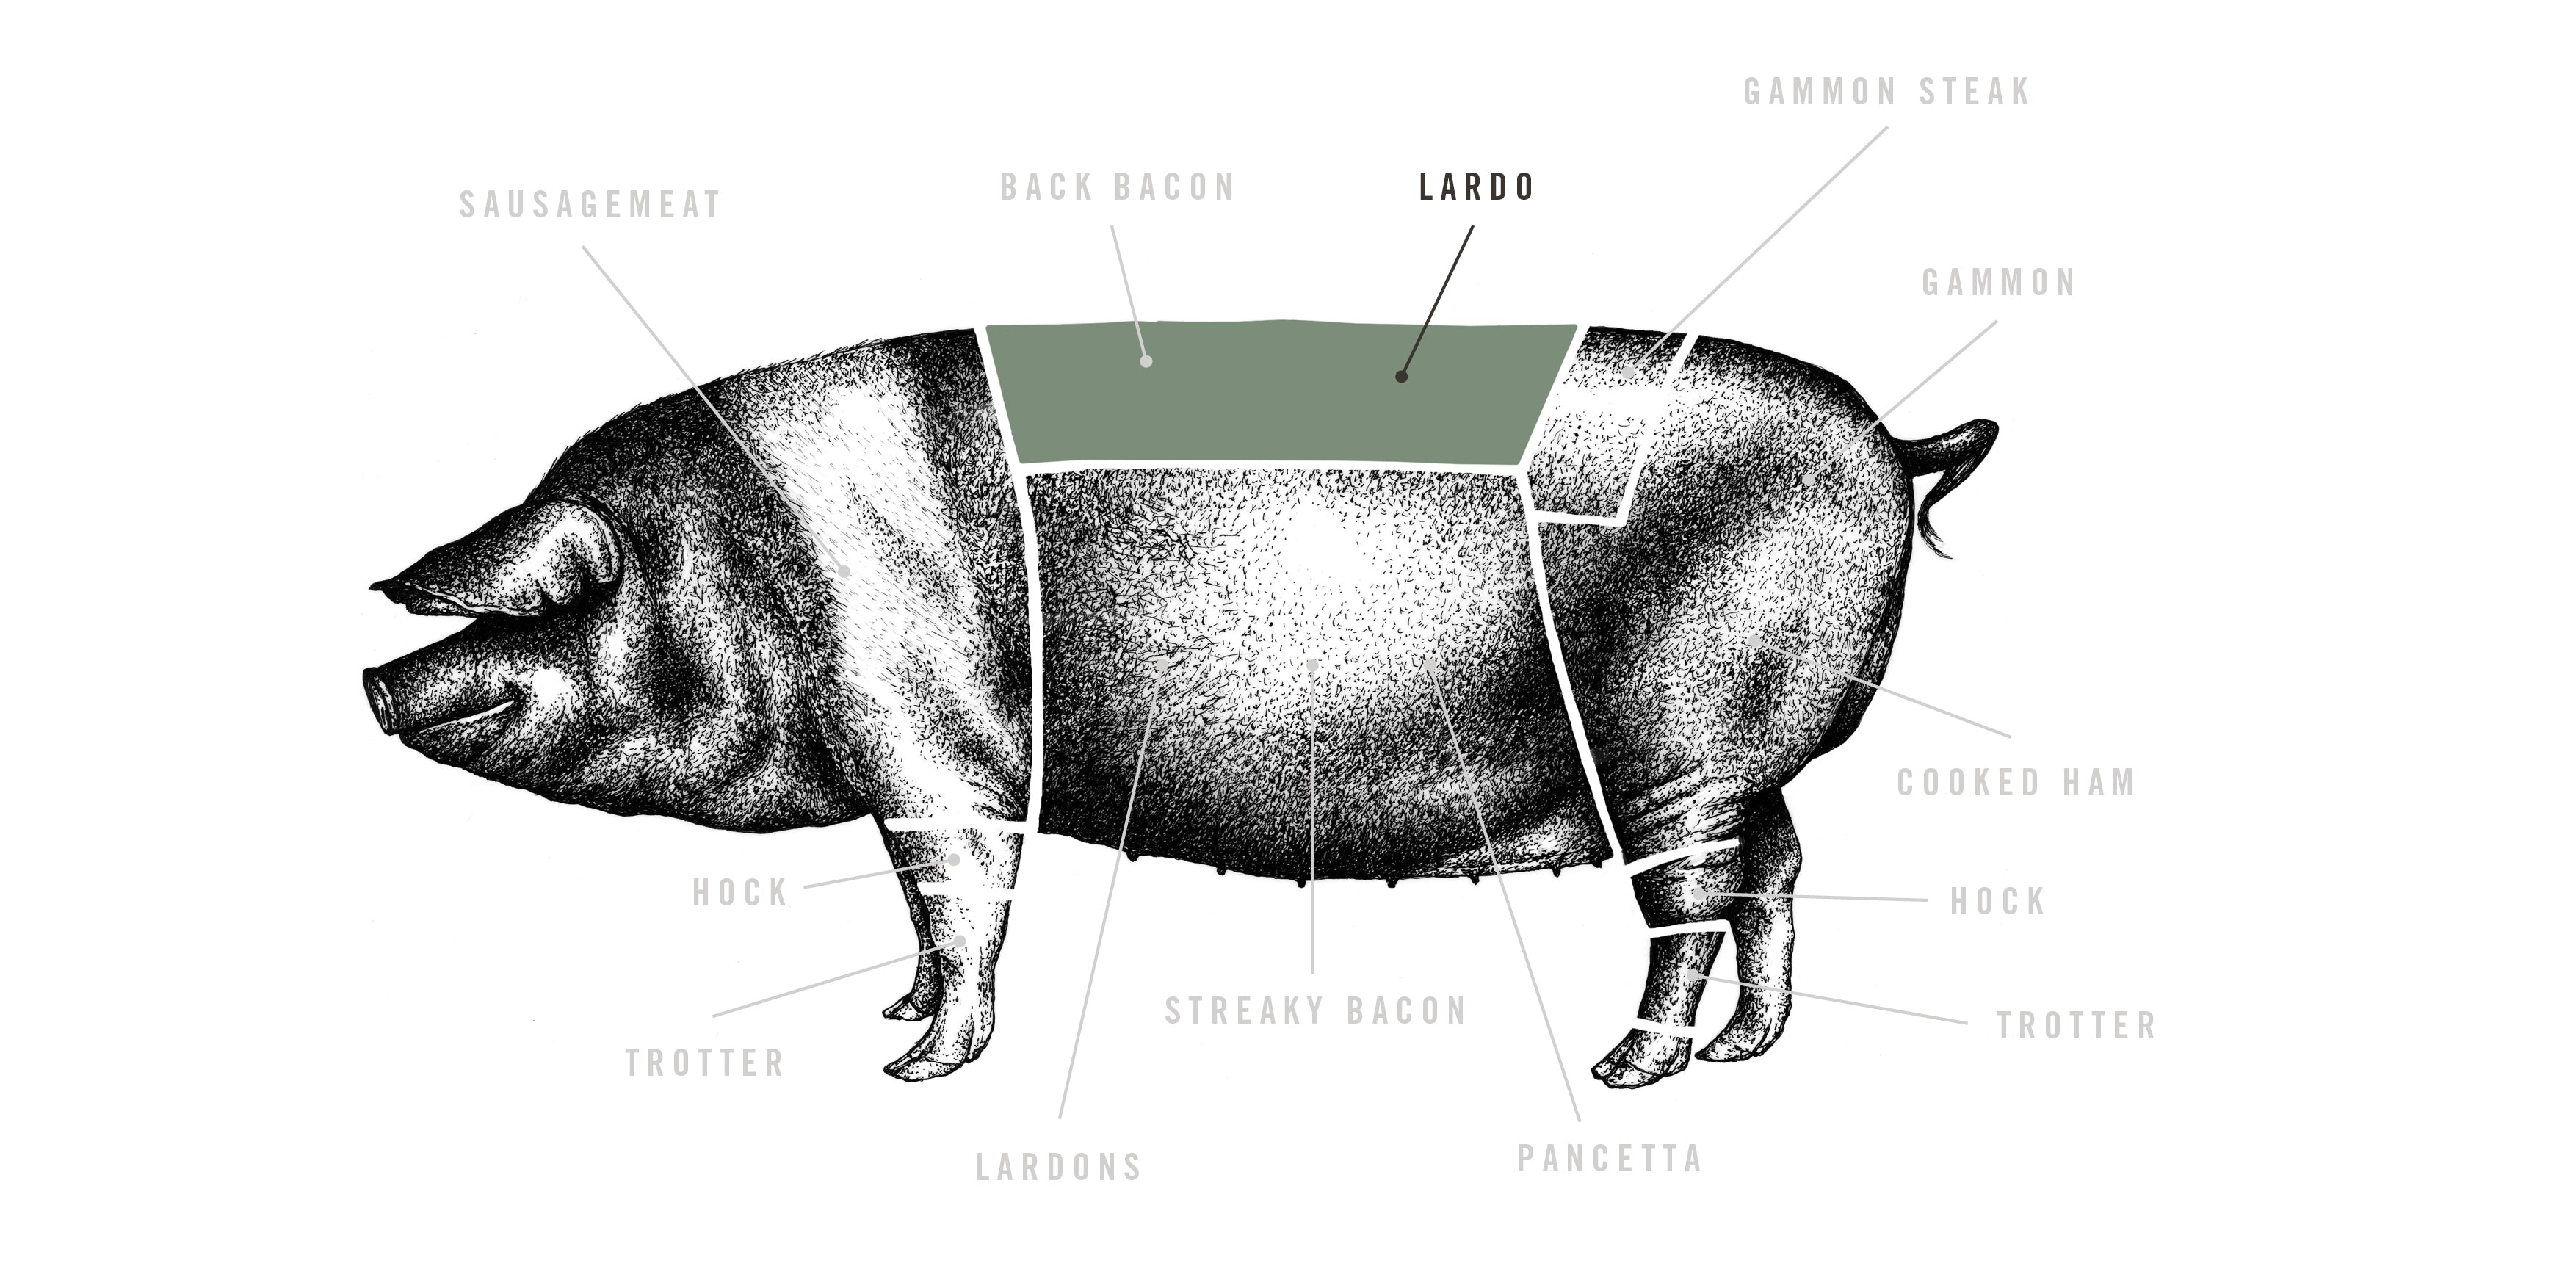 Saddleback Lardo meat cuts diagram